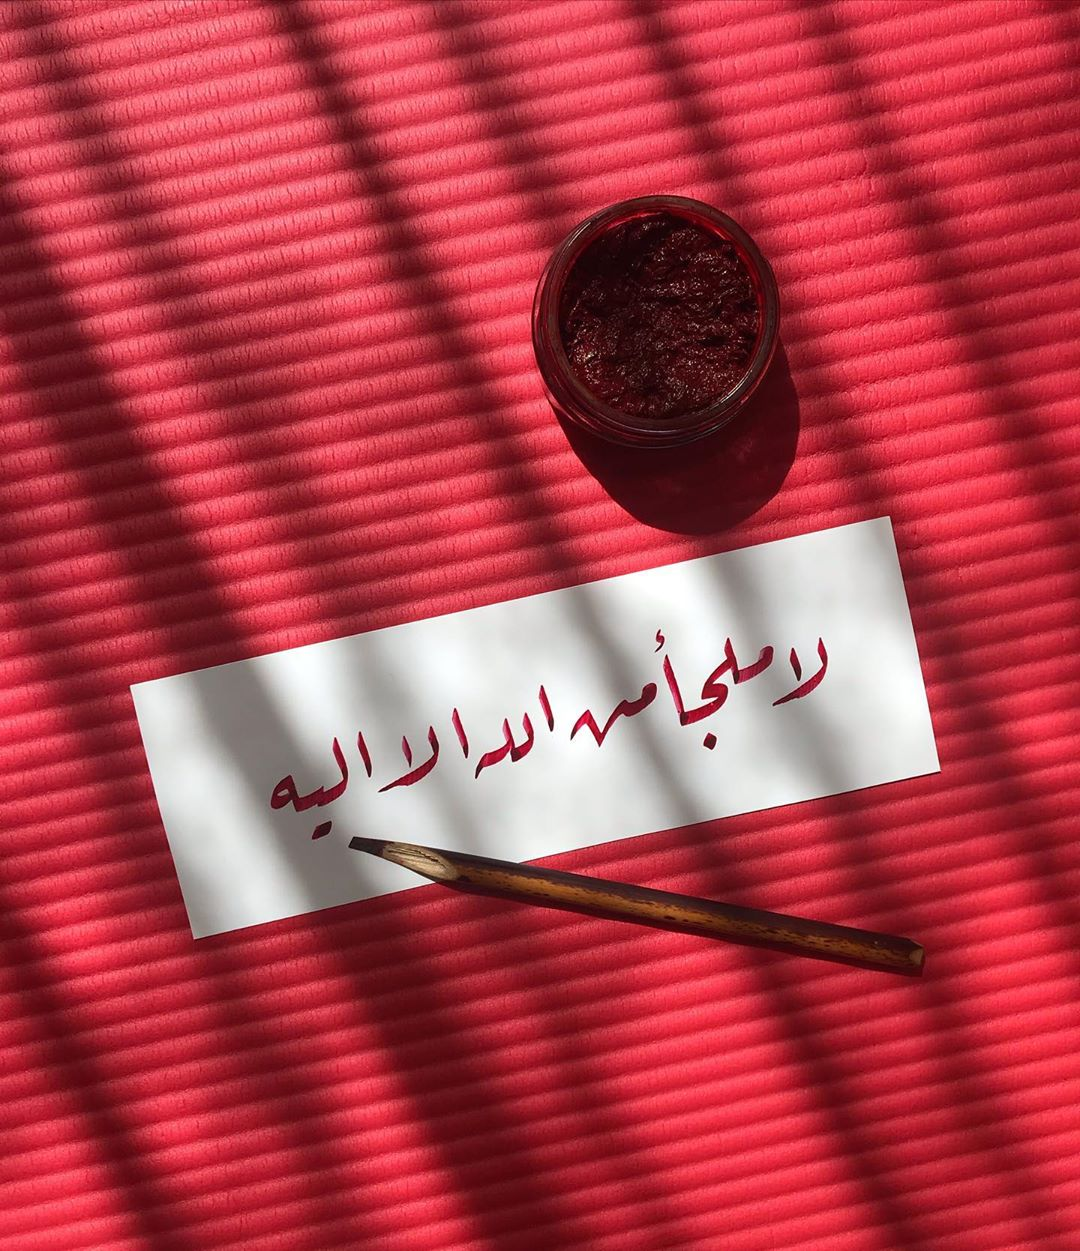 Donwload Photo Tevbe-118 سورة التوبة #arabiccalligraphy #islamiccalligraphy #tezhip #hüsnühat…- hattat_aa